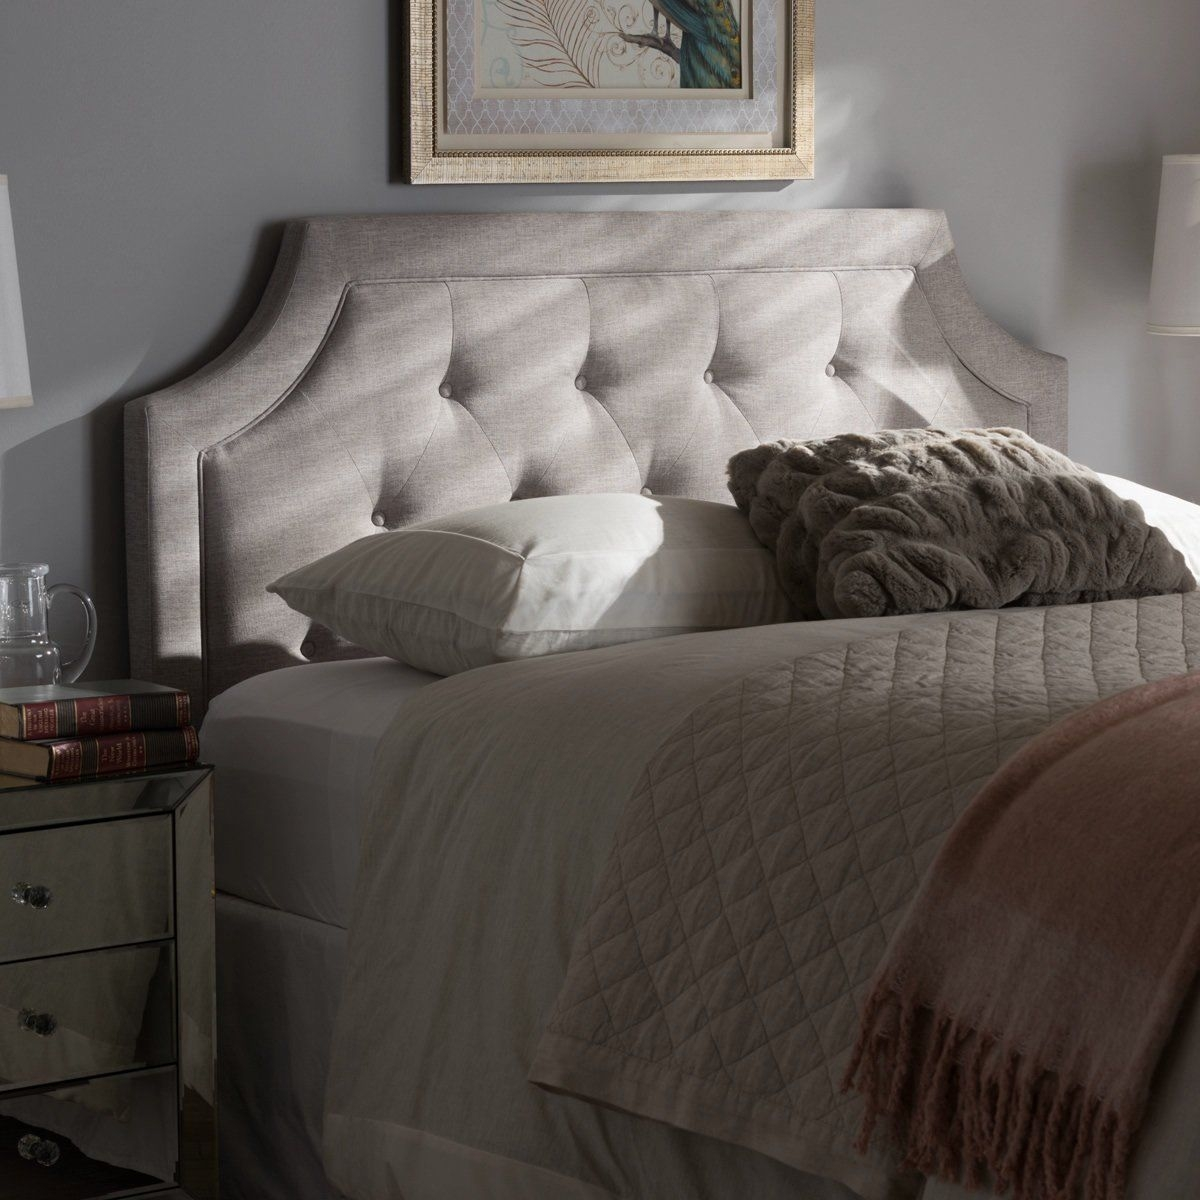 Amazing Headboard Design Ideas For Beds That Look Great39